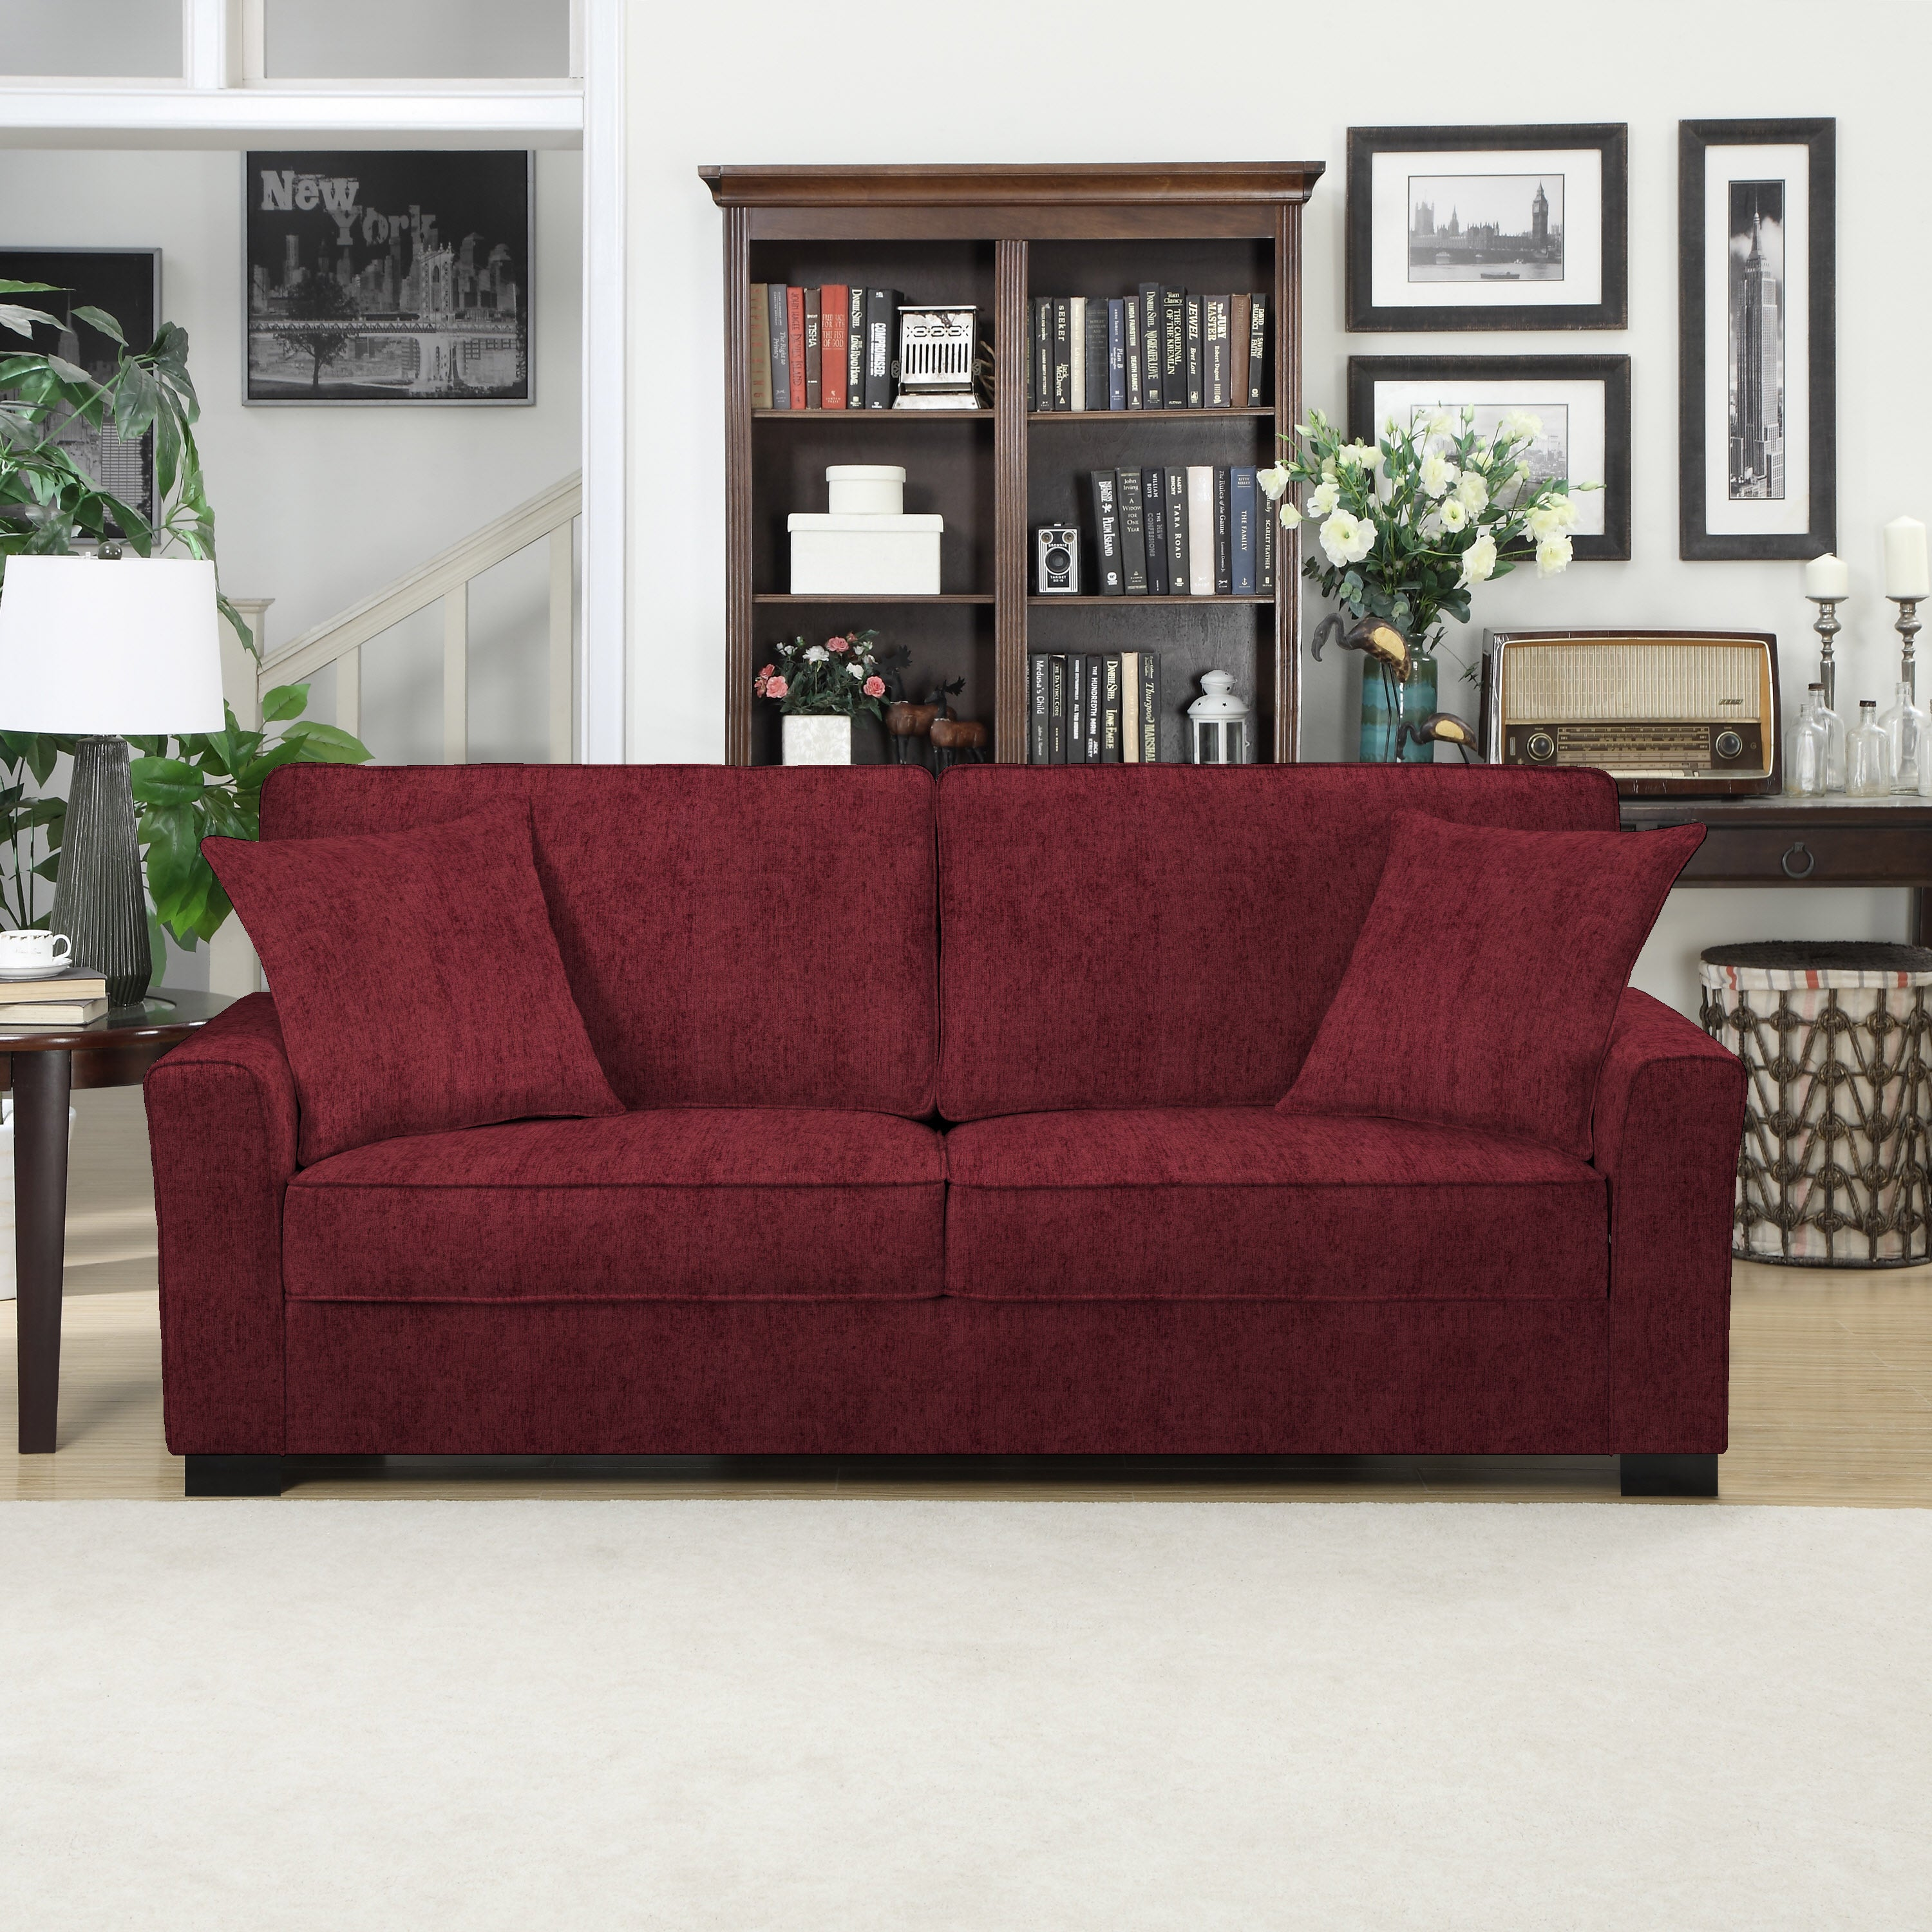 Handy Living Karsten Sofast Berry Red Chenille Sofa Free Shipping Today 10746991